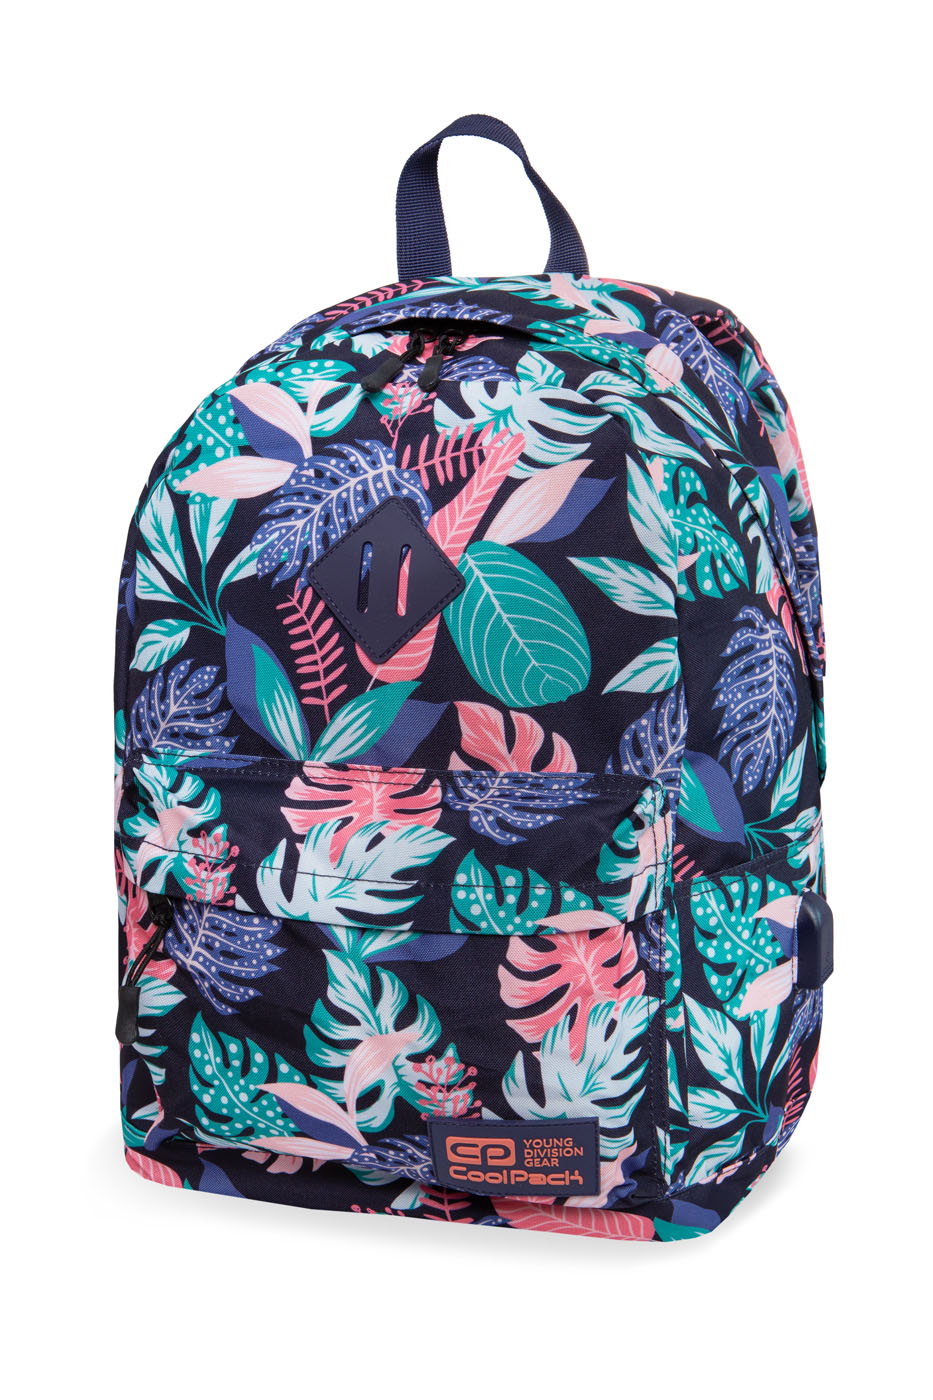 Coolpack - cross - youth backpack - tropical mist